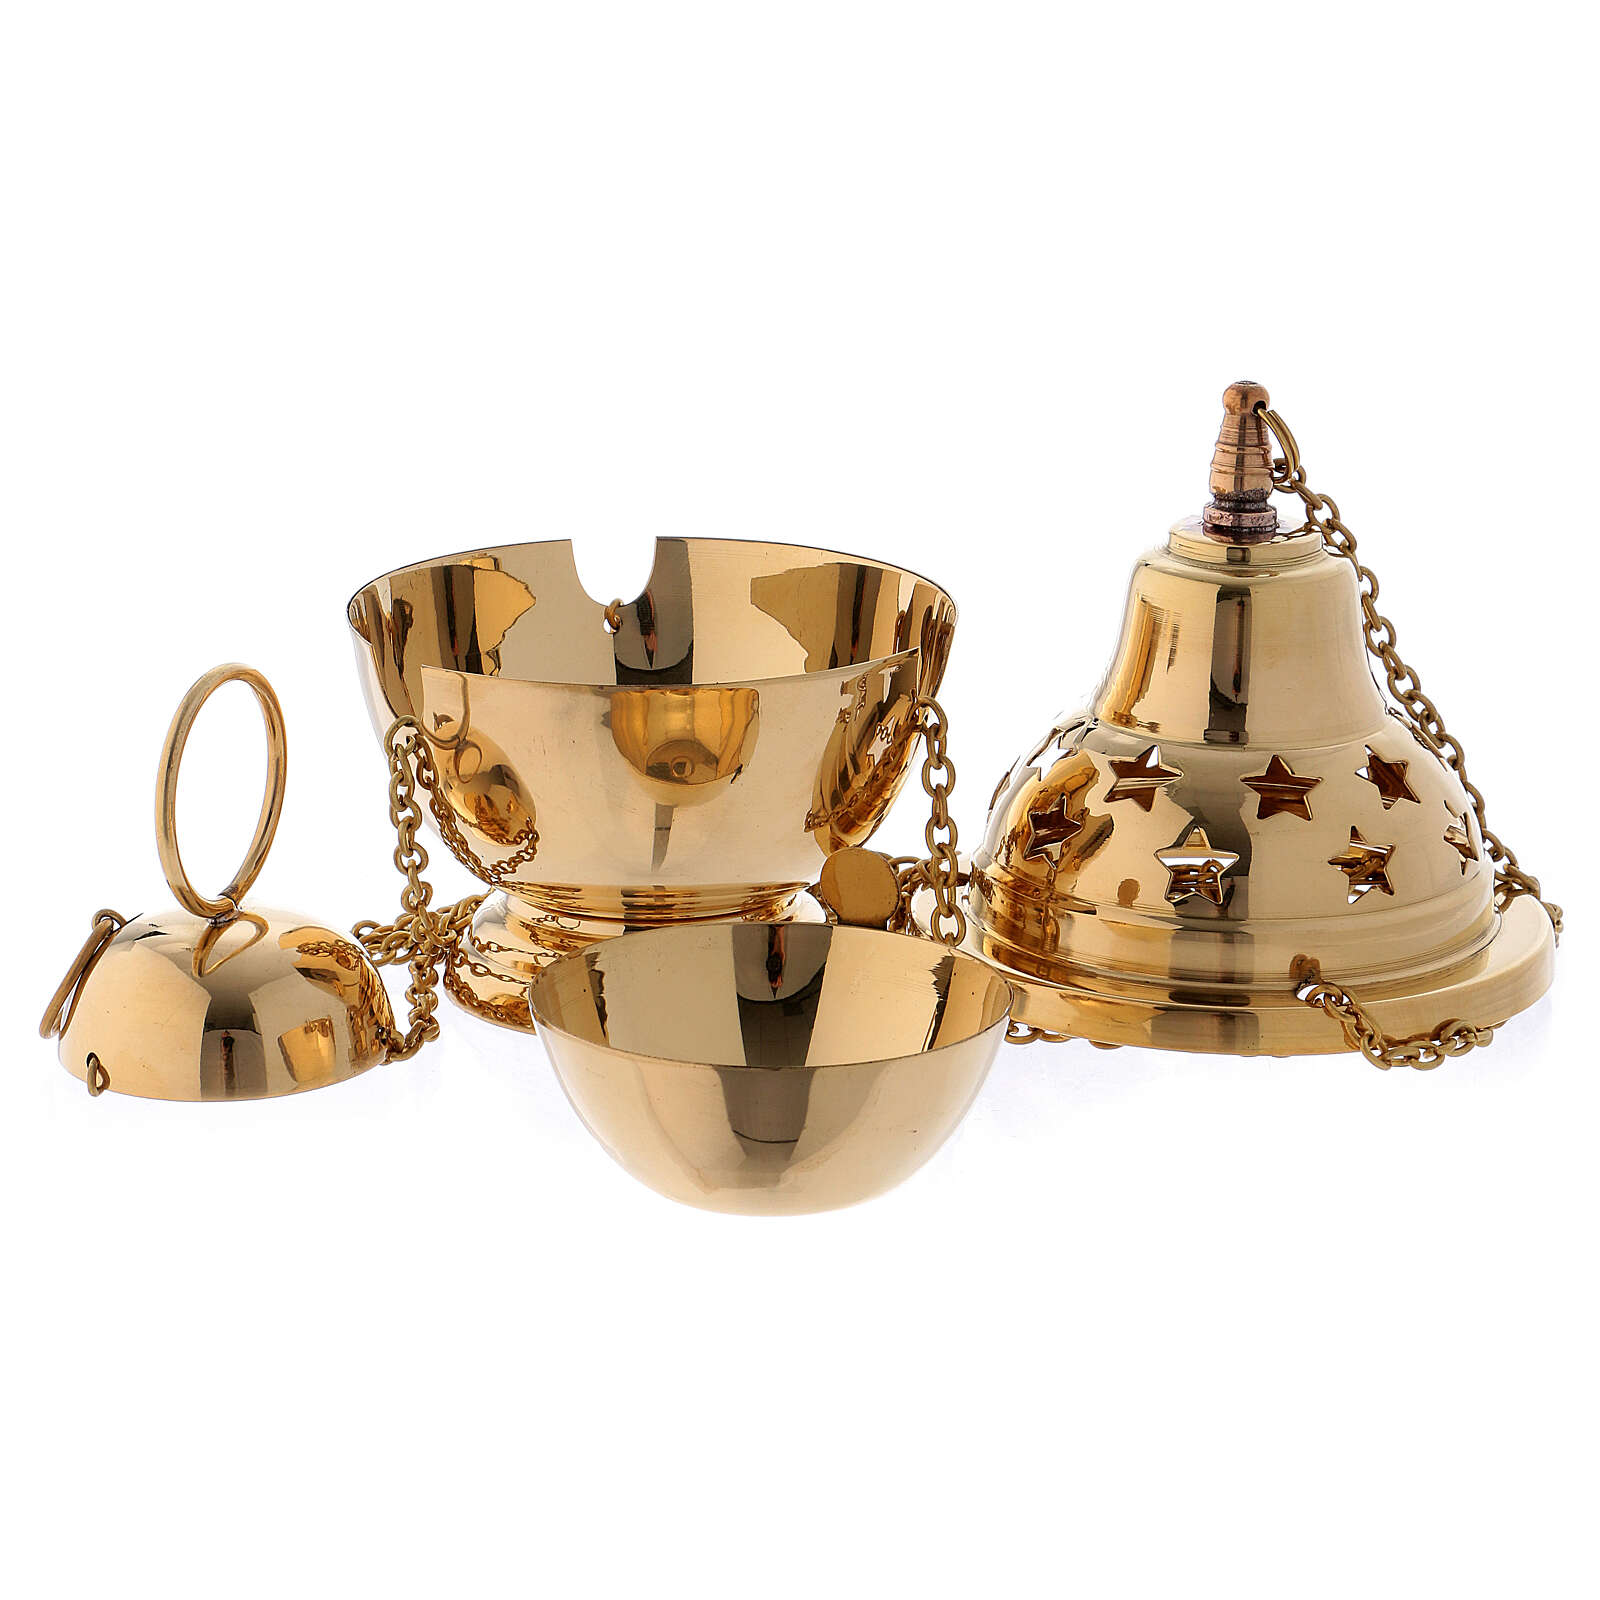 Gold plated brass thurible with stars 6 1/4 in 3